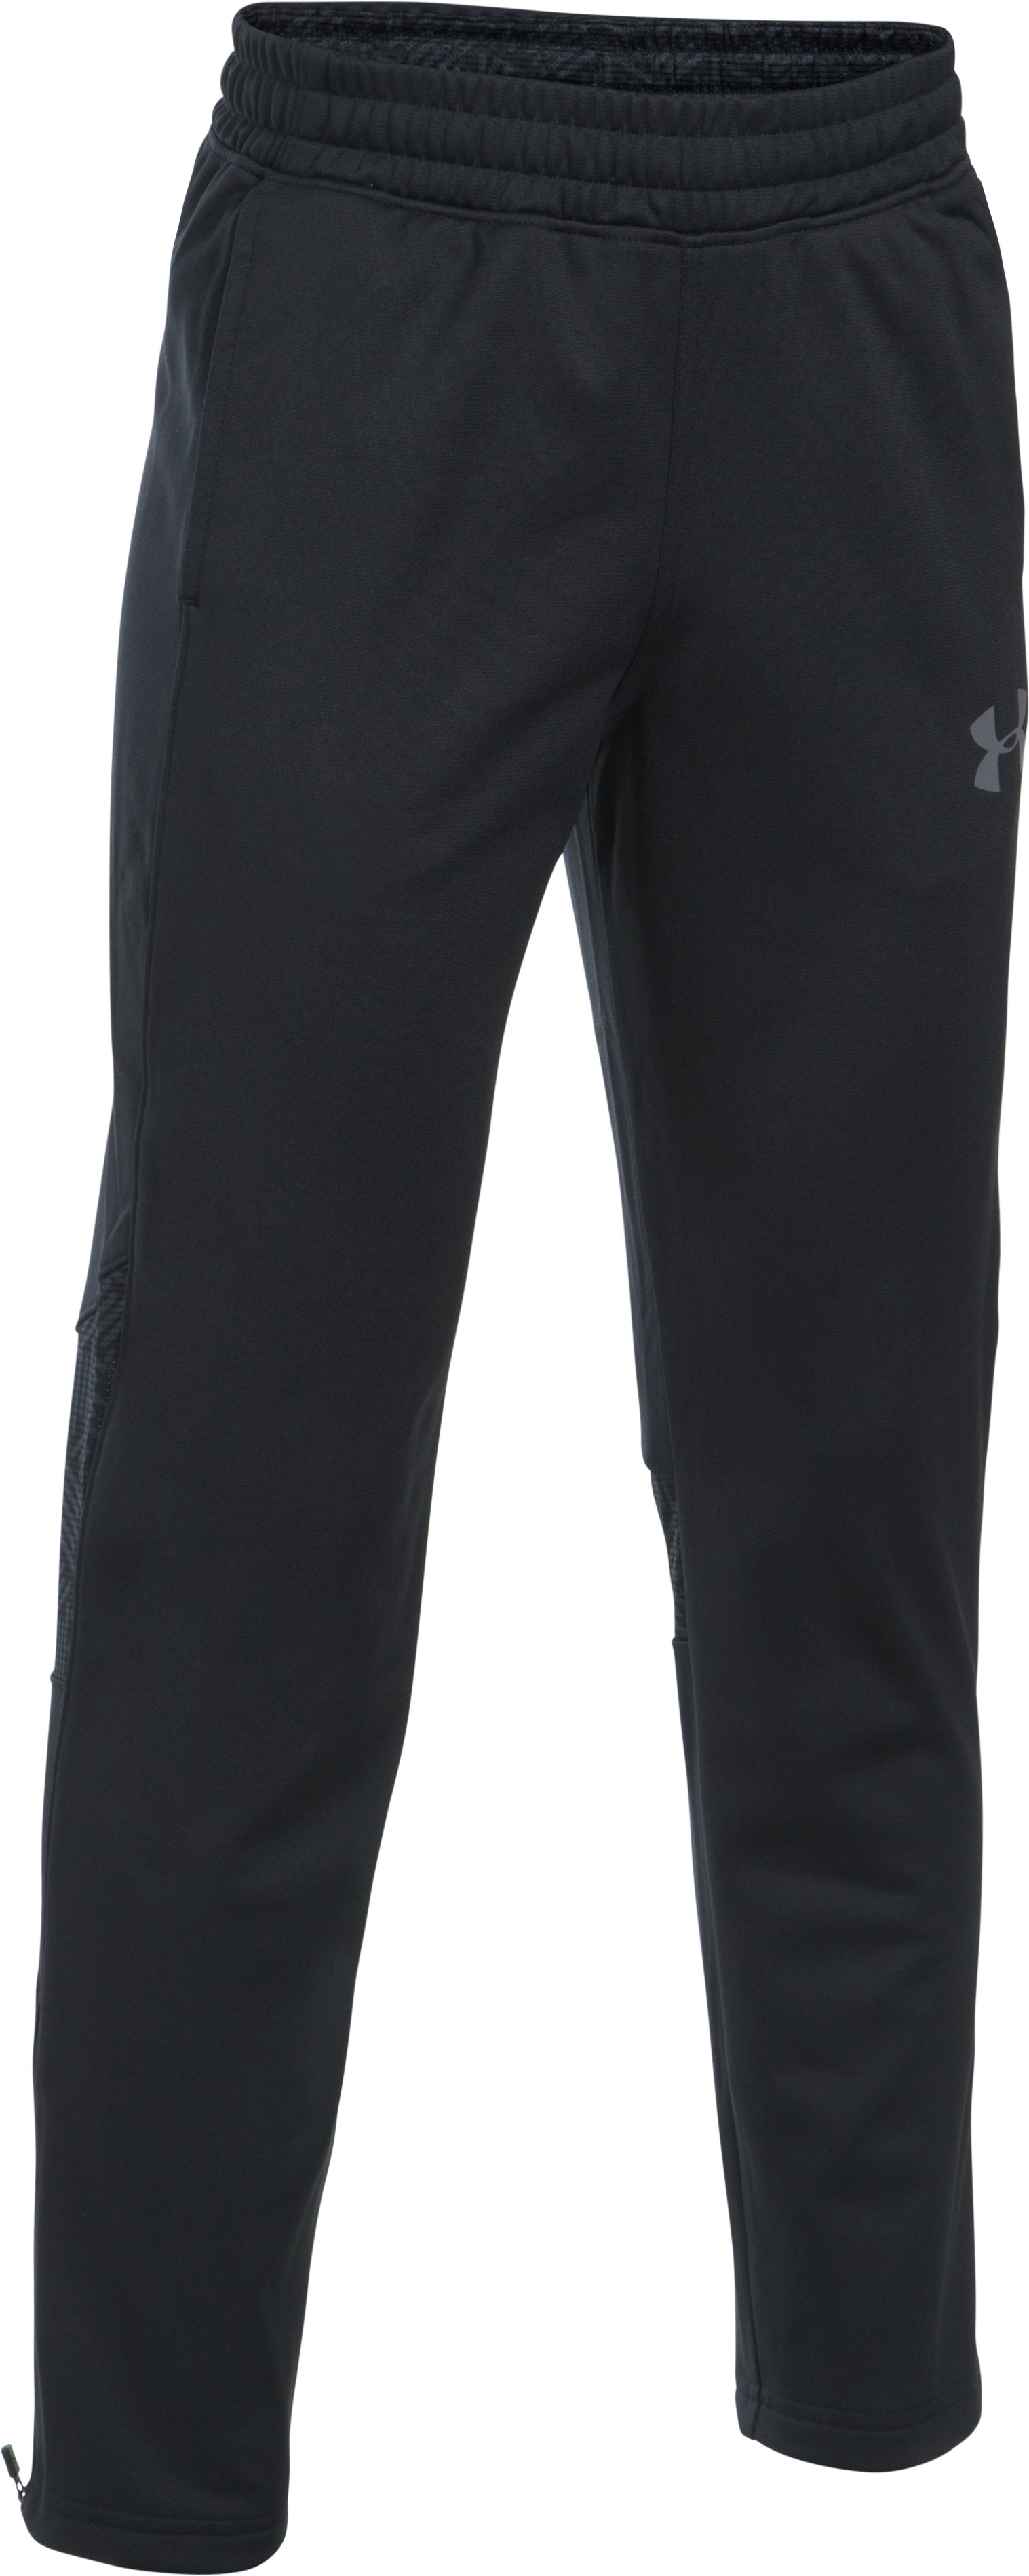 Boys' UA Select Warm-Up Pants, Black ,